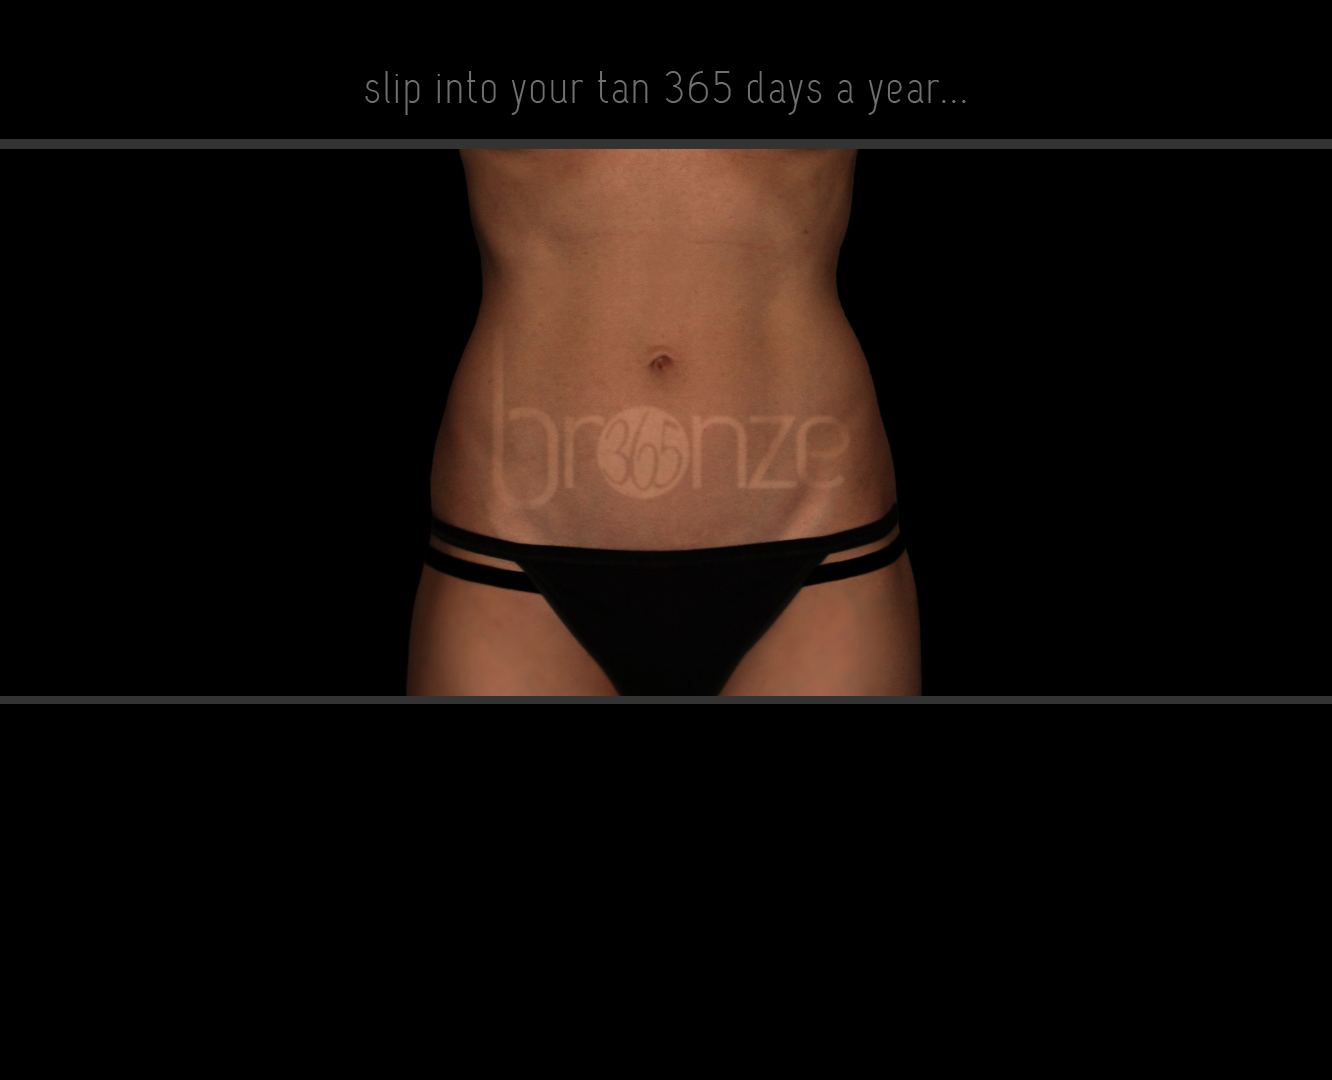 Slip into your tan with Bronze365